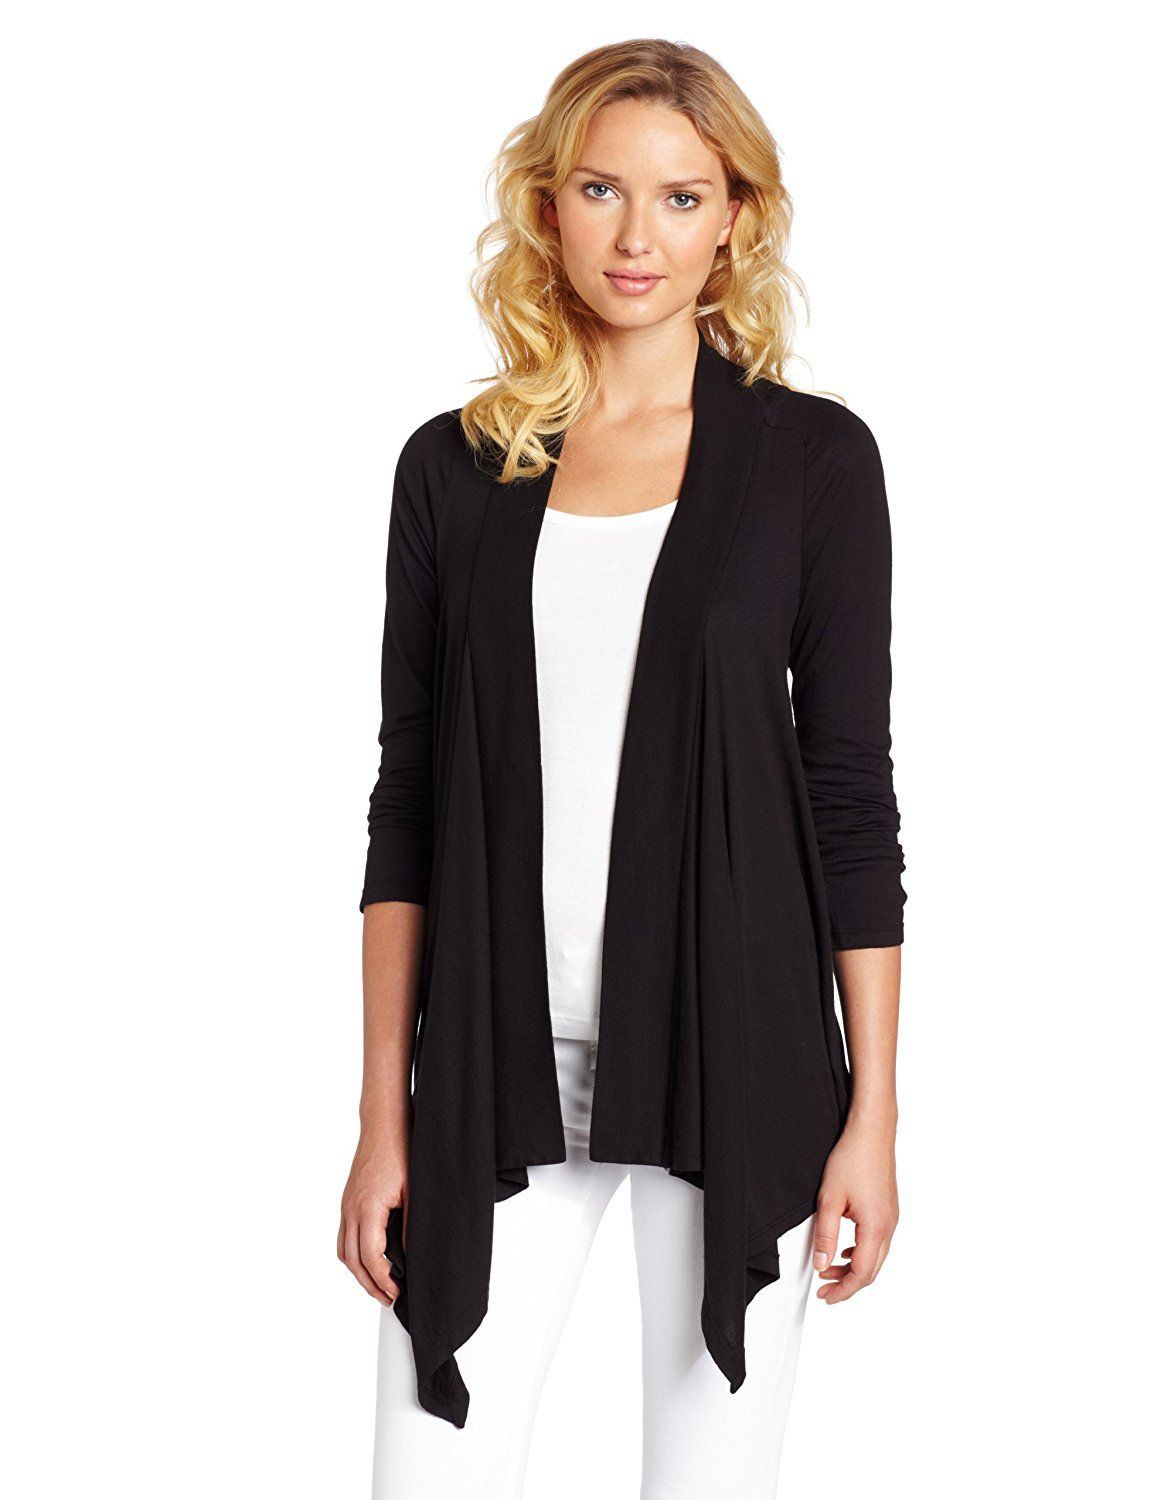 Amazon.com: Splendid Women's Jersey Wrap Cardigan: Clothing ...